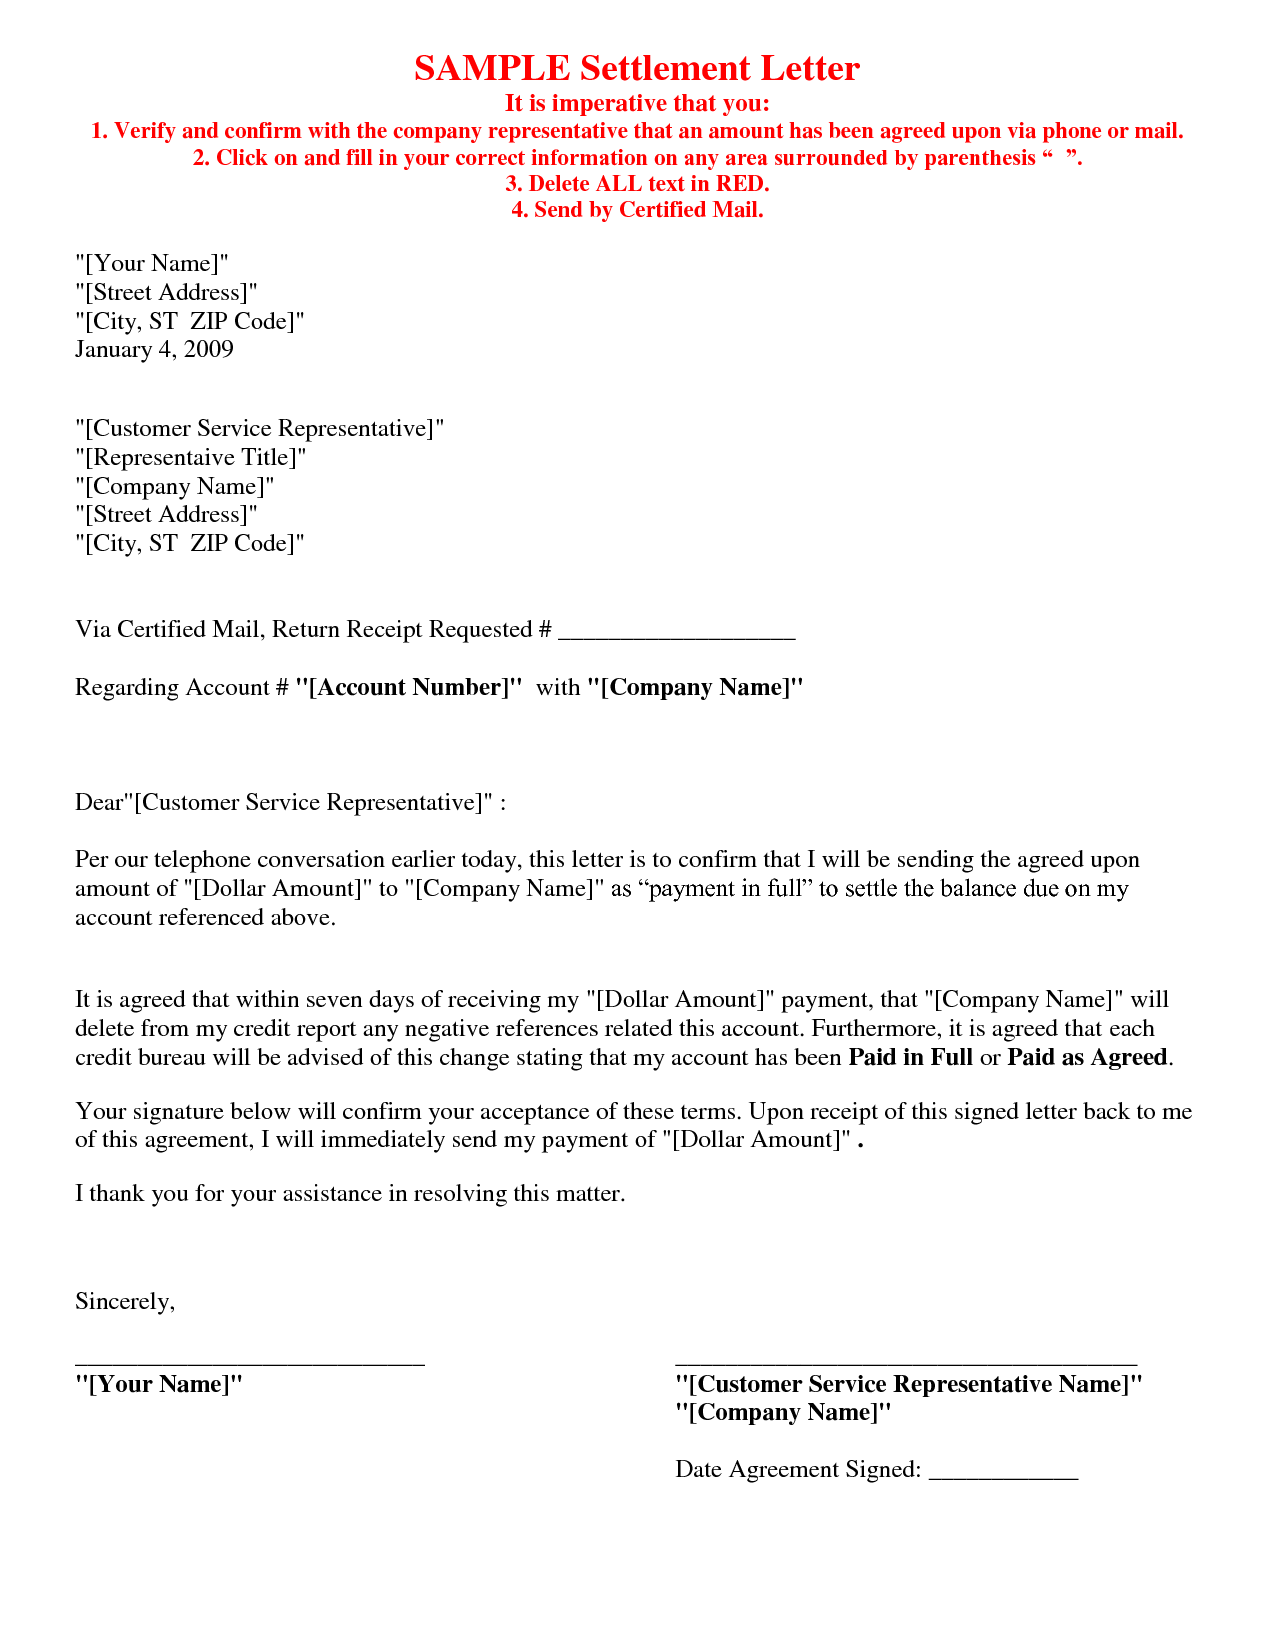 Picture 5 of 17 debt settlement agreement letter sample picture 5 of 17 debt settlement agreement letter sample agreement letter template altavistaventures Gallery